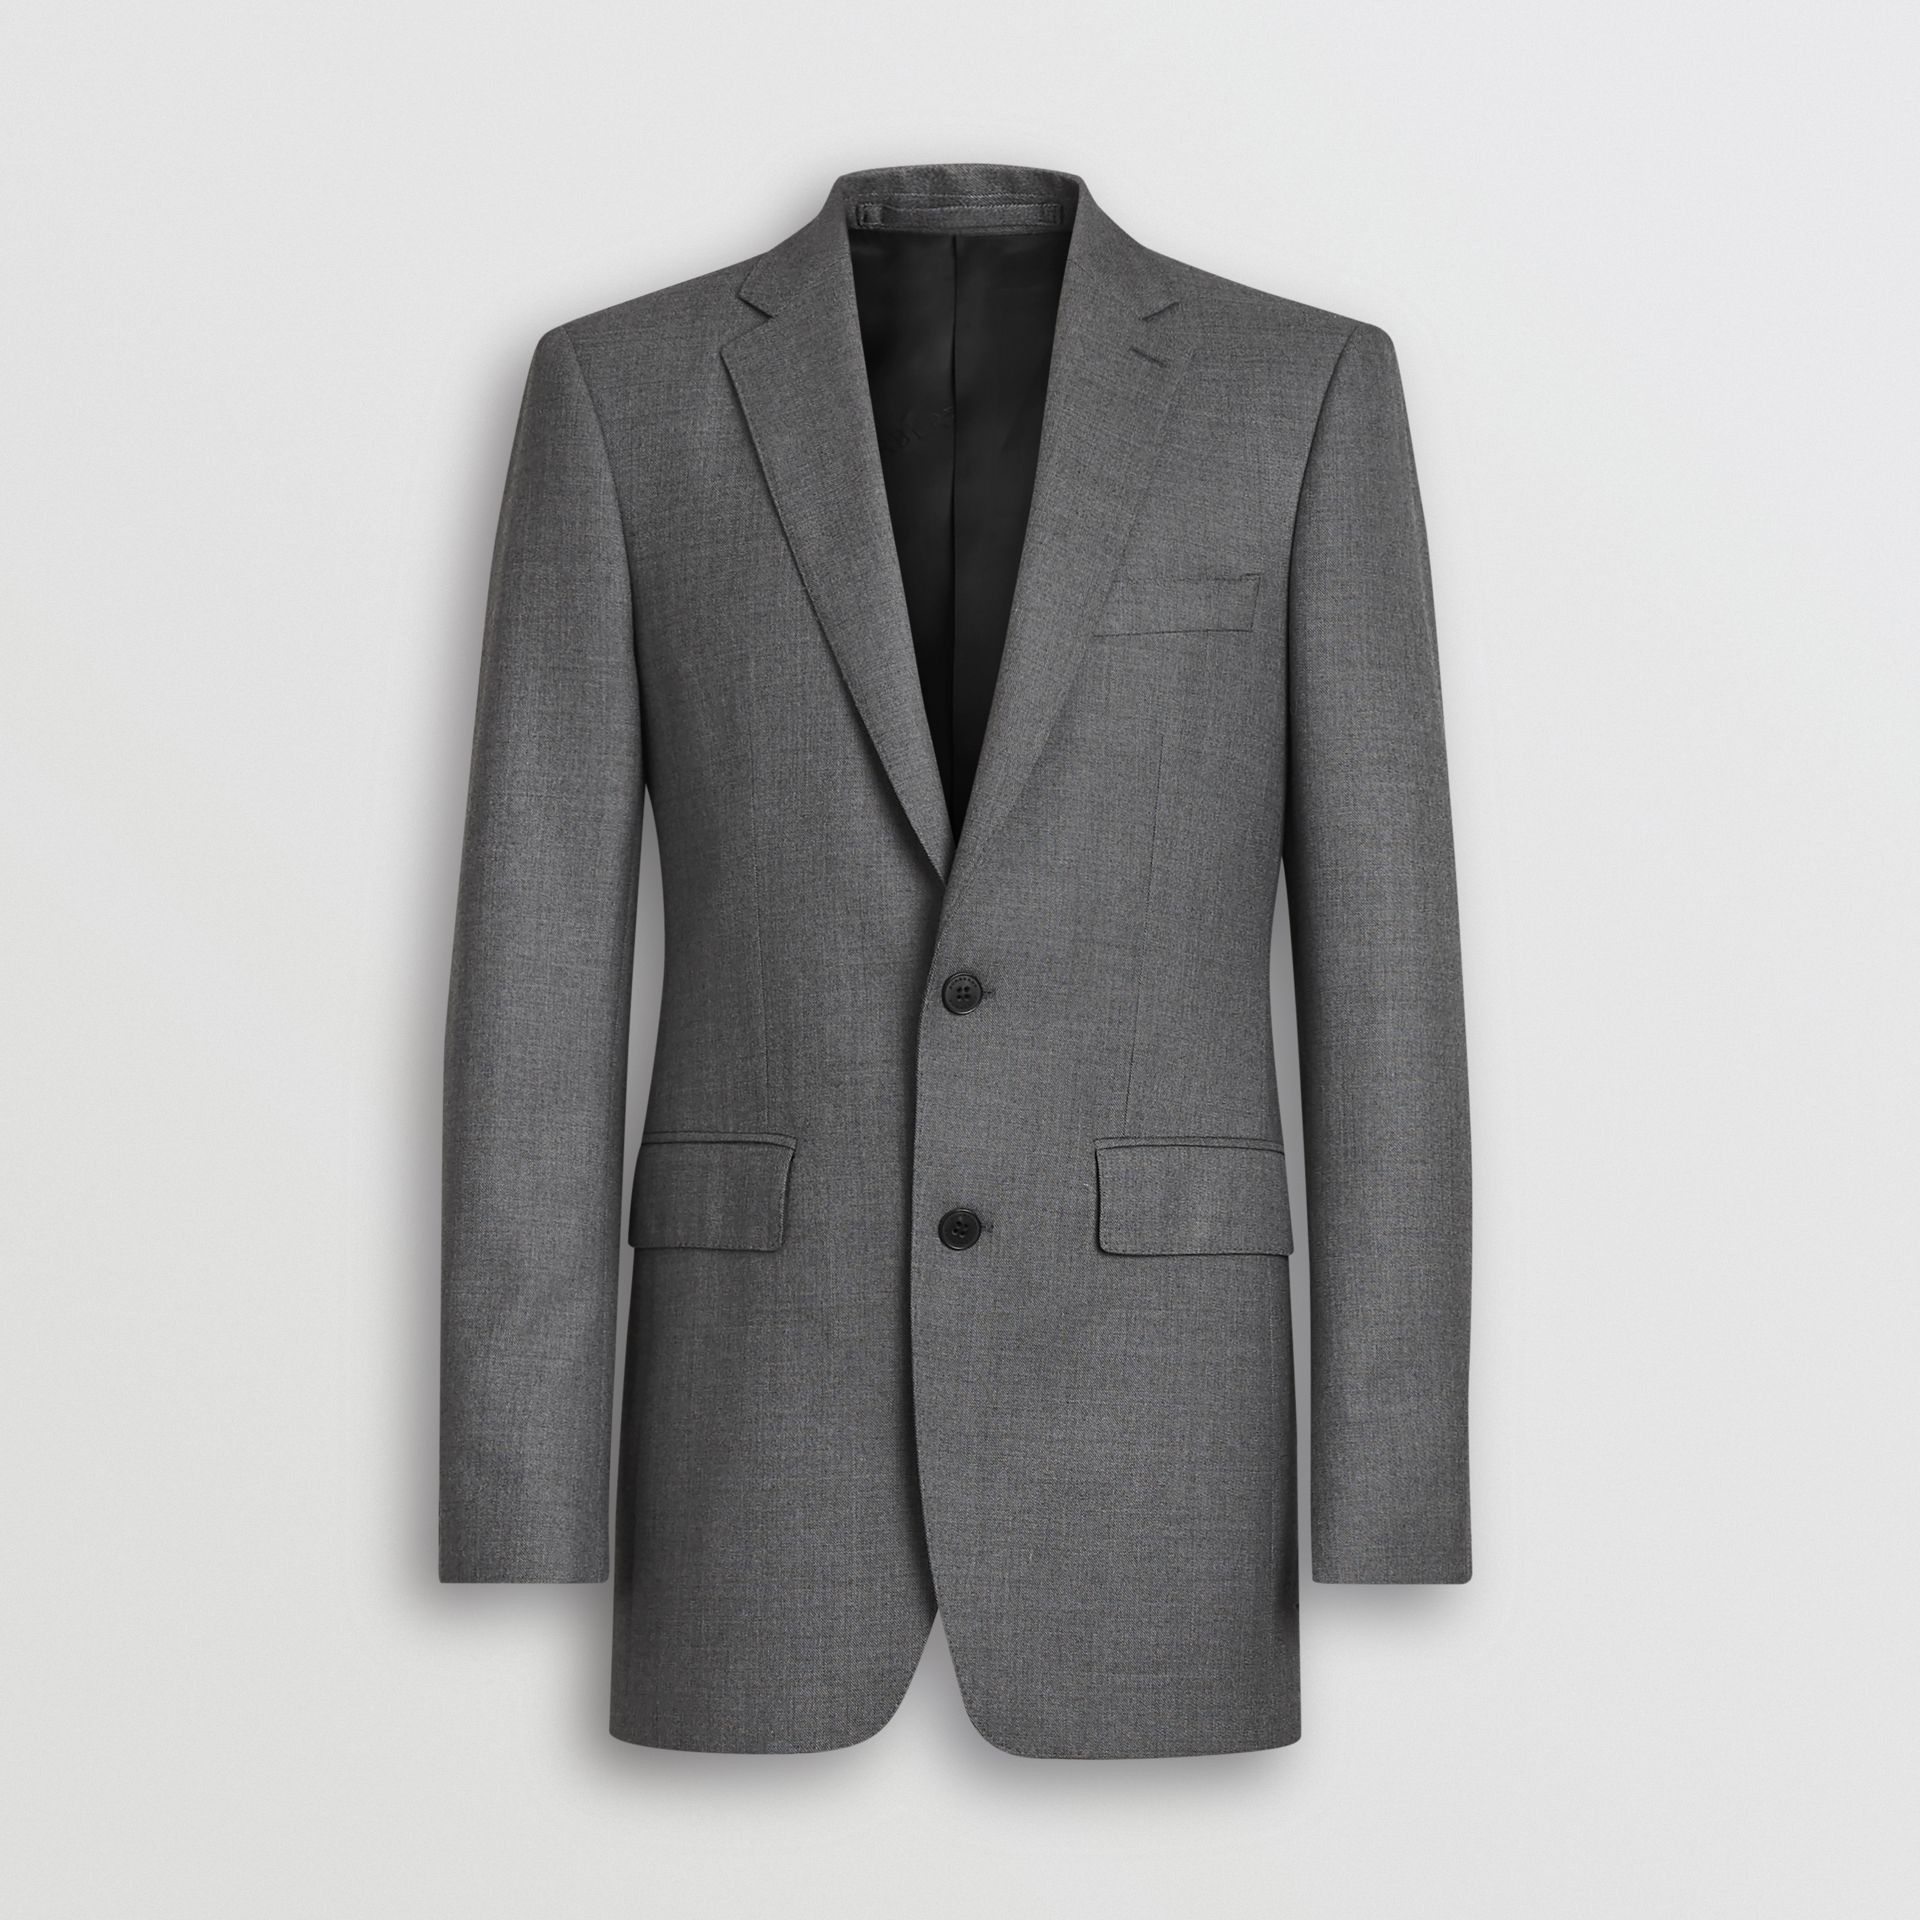 Classic Fit Sharkskin Wool Suit in Mid Grey Melange - Men | Burberry Hong Kong S.A.R - gallery image 3